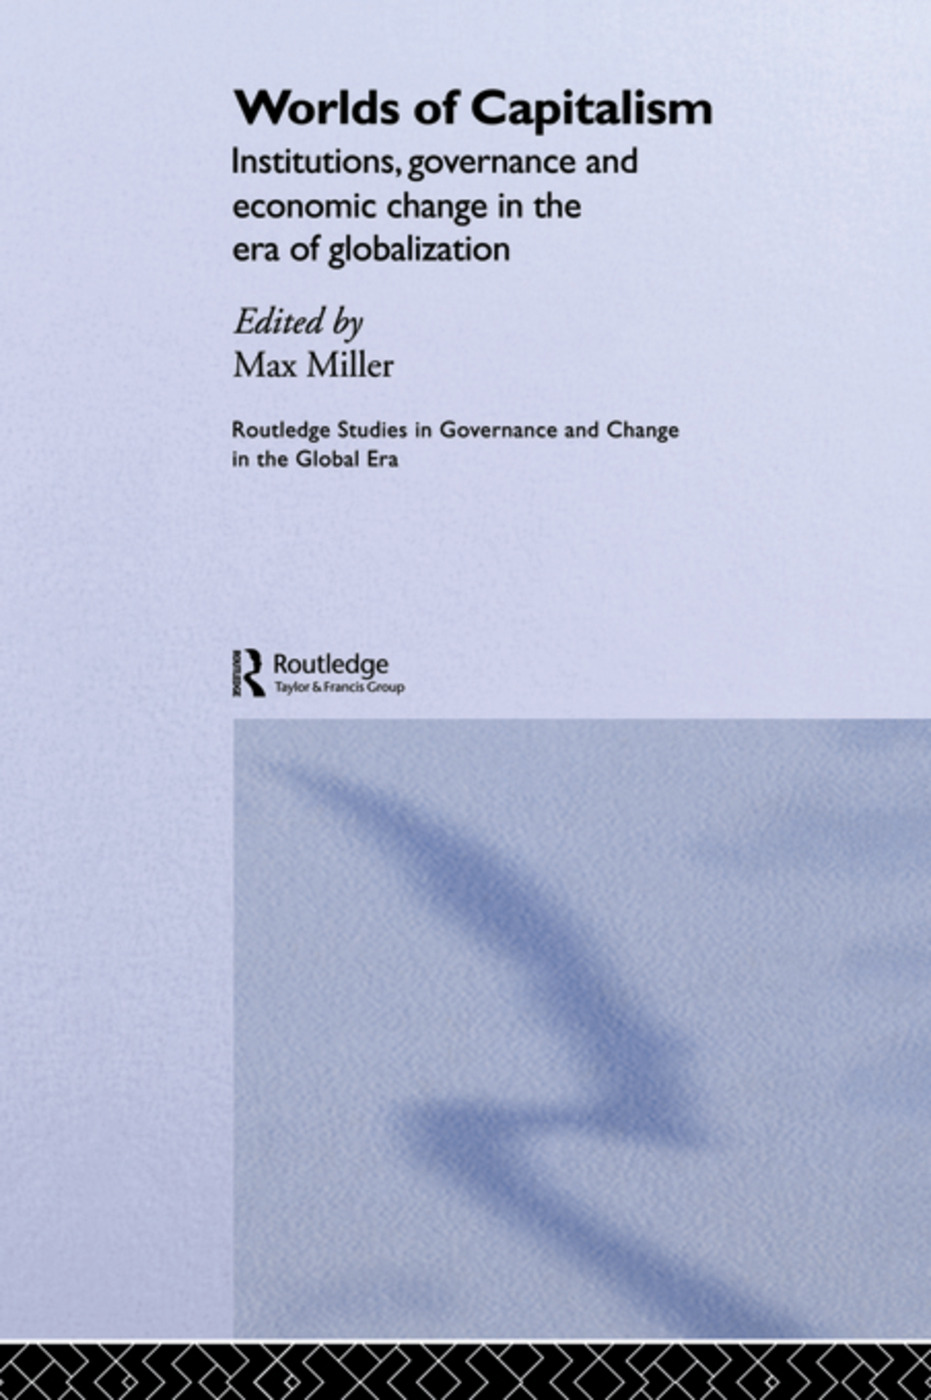 Worlds of Capitalism: Institutions, Economic Performance and Governance in the Era of Globalization book cover